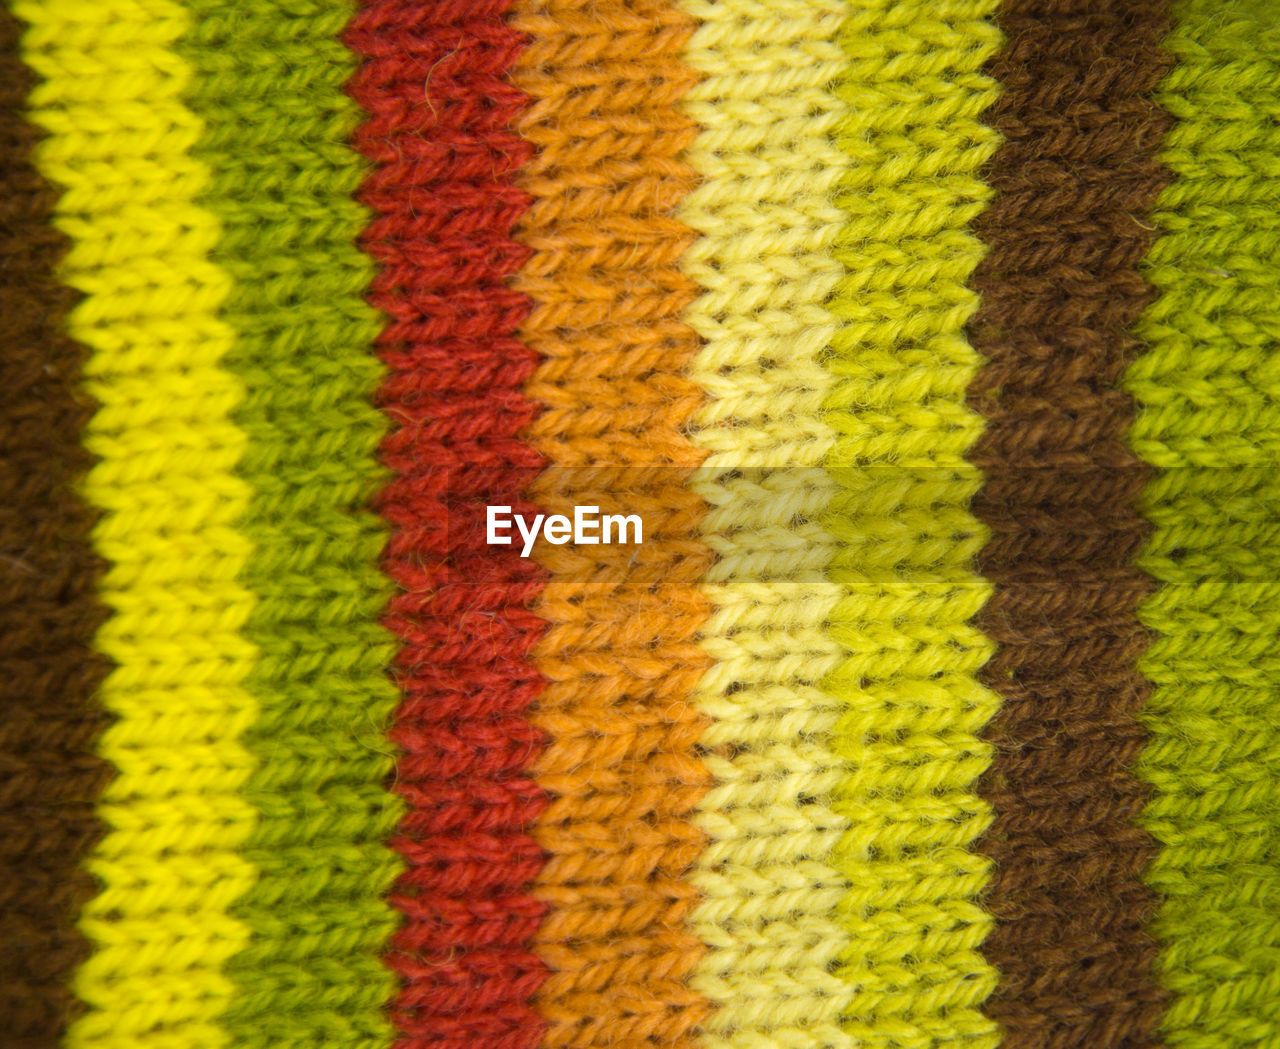 full frame, yellow, close-up, no people, backgrounds, pattern, multi colored, indoors, striped, textured, textile, focus on foreground, sport, high angle view, abstract, wool, design, selective focus, red, white color